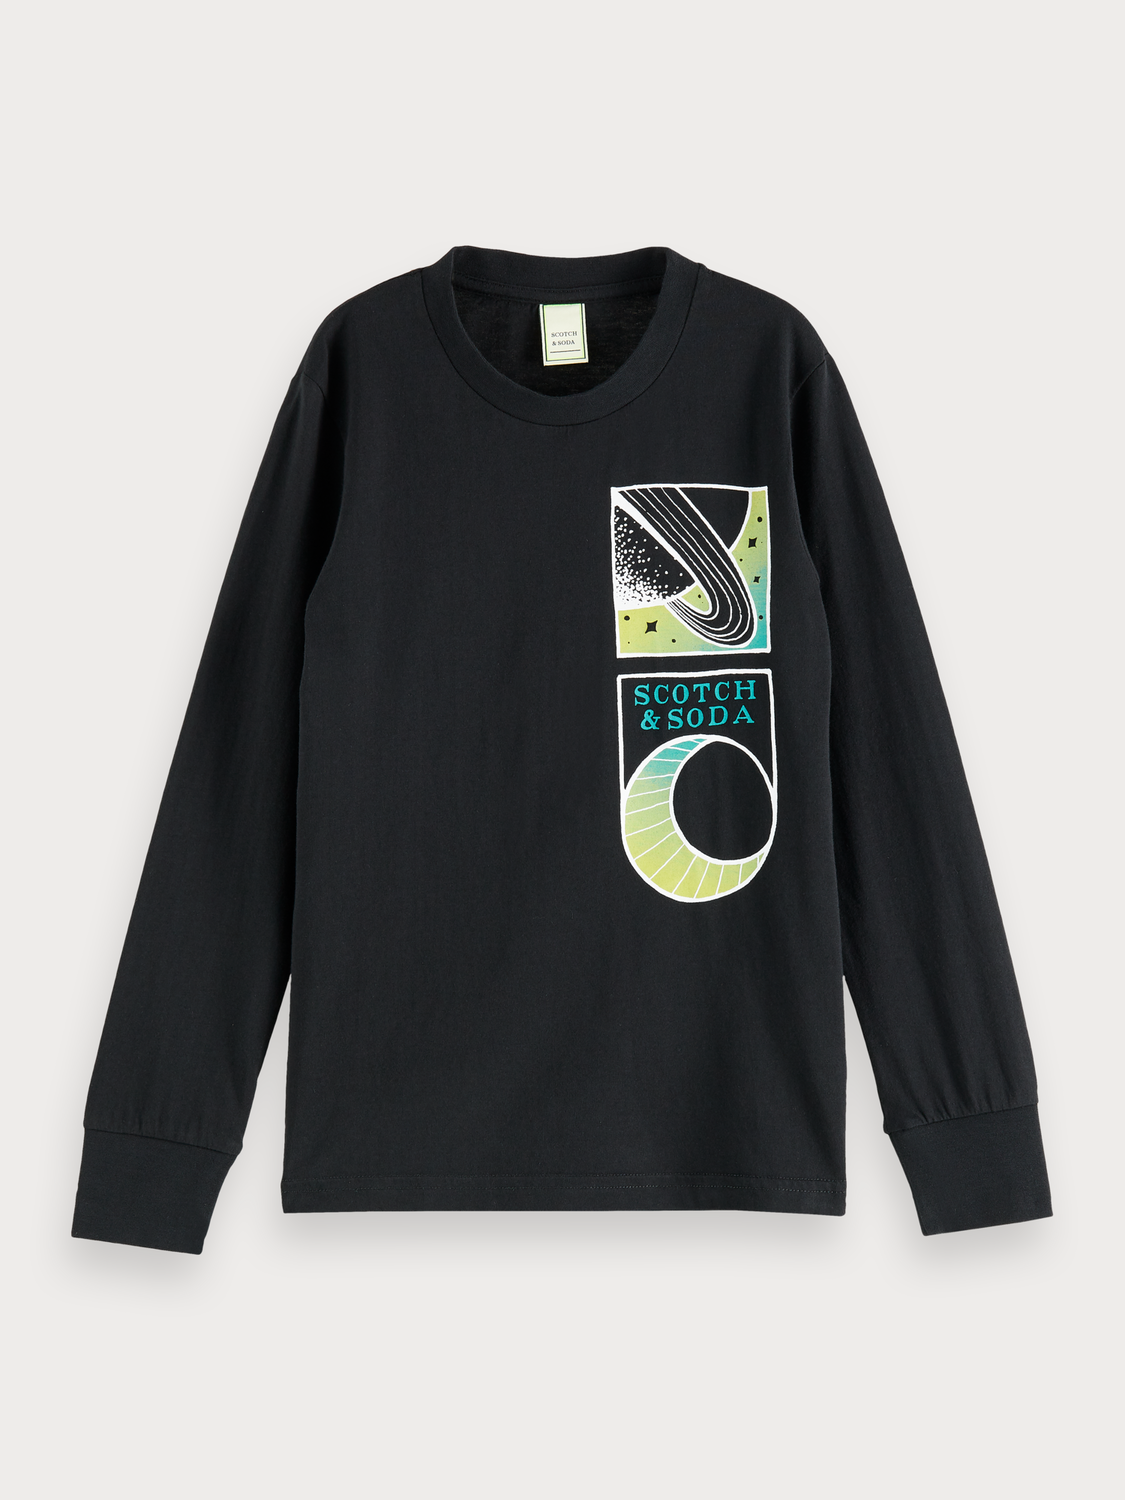 Boys 100% cotton long sleeve t-shirt with placed artwork